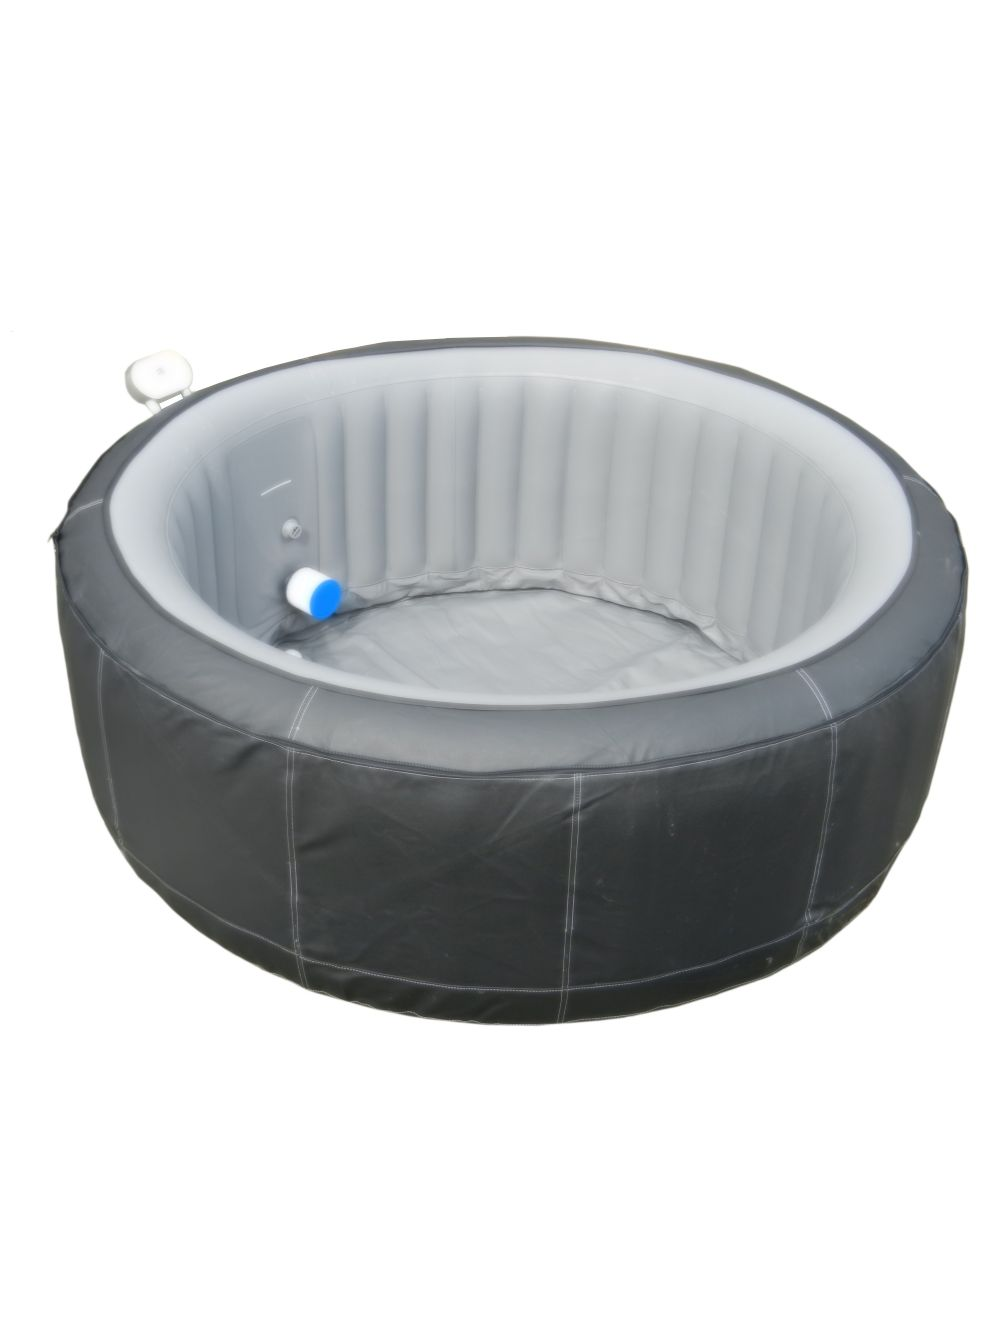 spa gonflable water health losiane 4 places